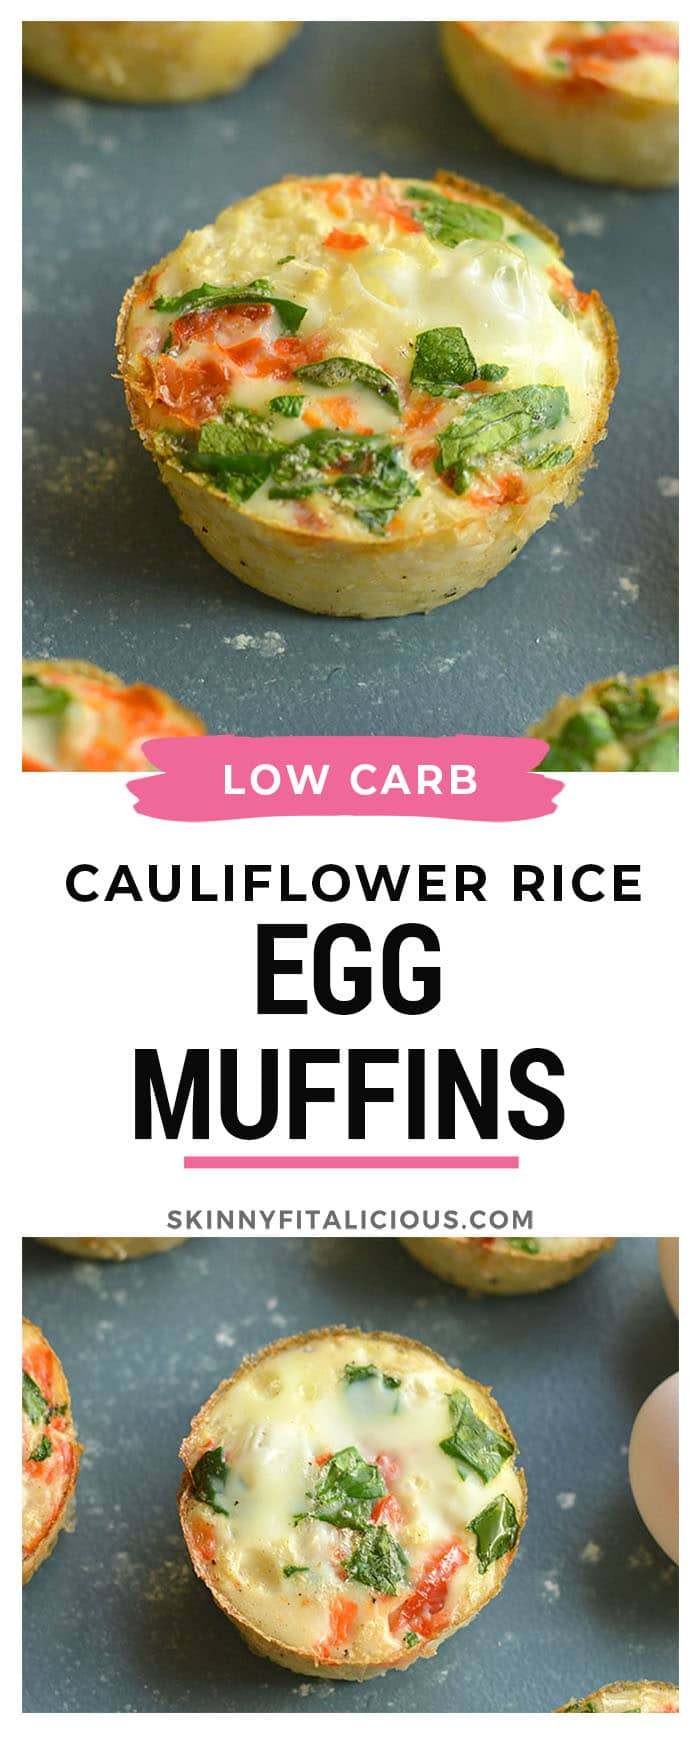 Cauliflower Egg Muffins made with cauliflower rice! With 6 grams of protein and less than 1 gram of carbs, these egg muffins make a nutritious make ahead breakfast you can take with you on-the-go! Paleo + Gluten Free + Low Calorie.